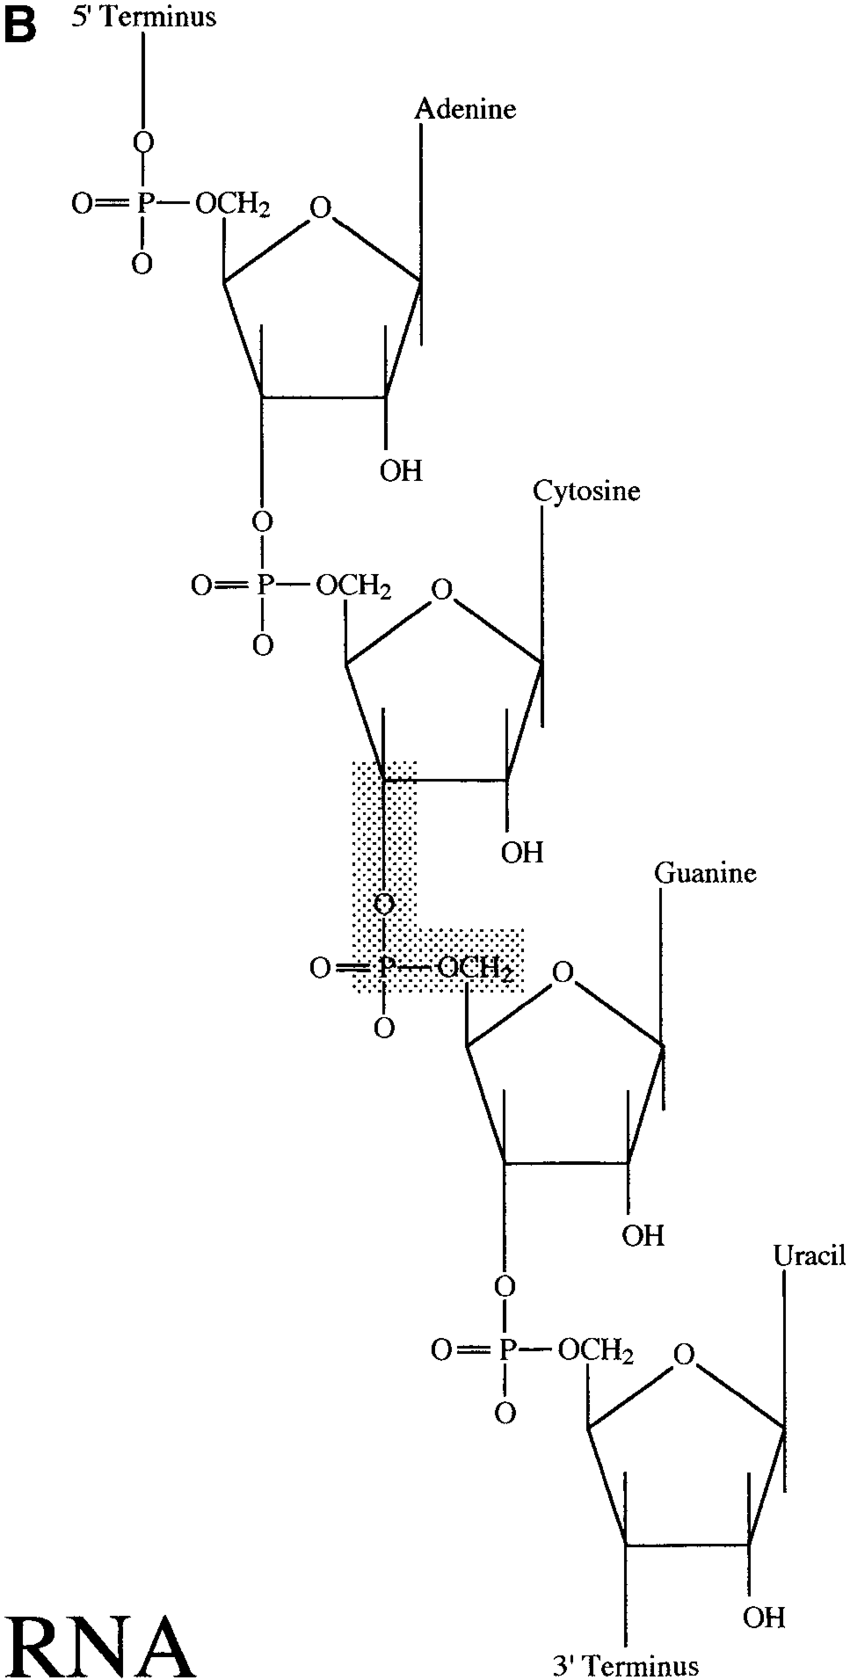 medium resolution of the chemical structure of repeating nucleotide subunits in dna and rna each panel shows the